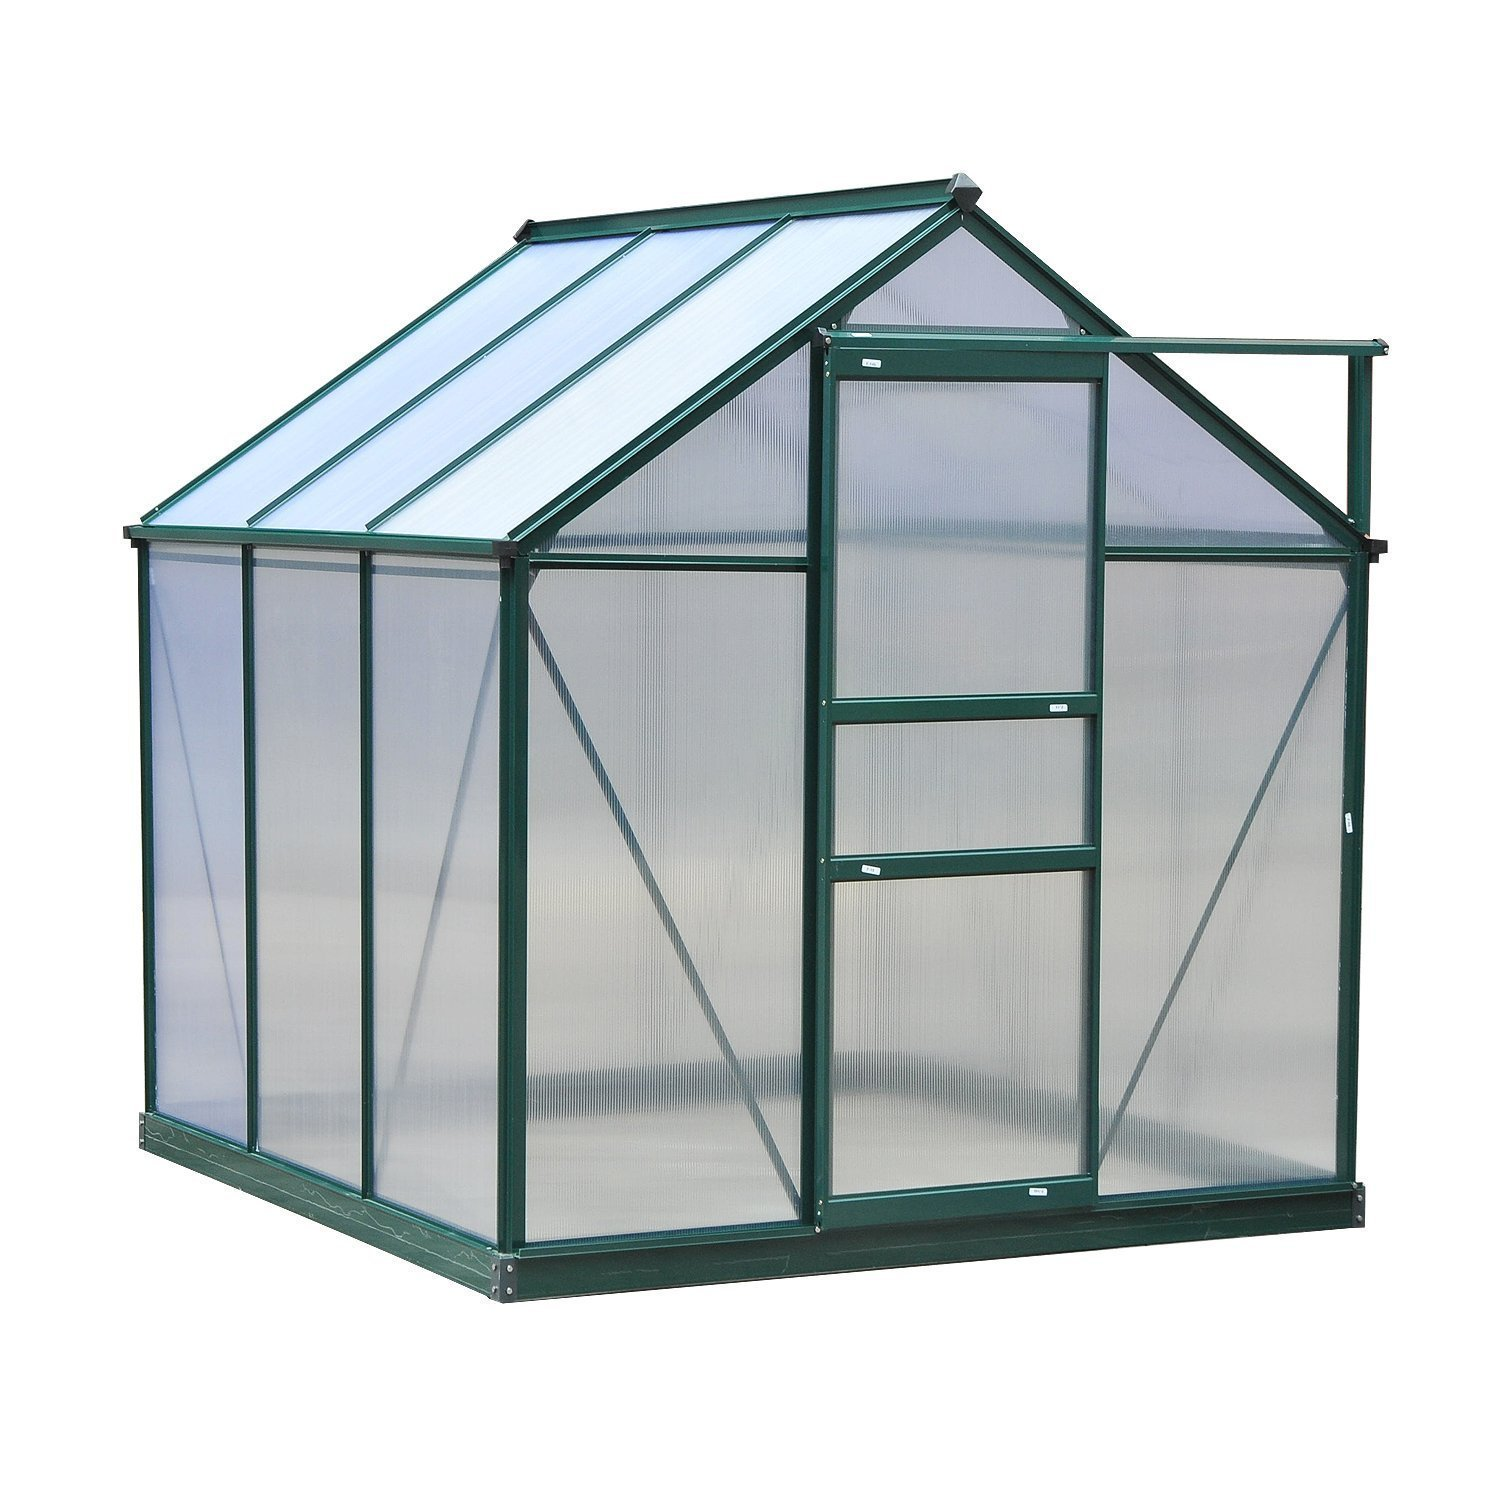 Greenhouse reinforced from polycarbonate: photo, reviews, build